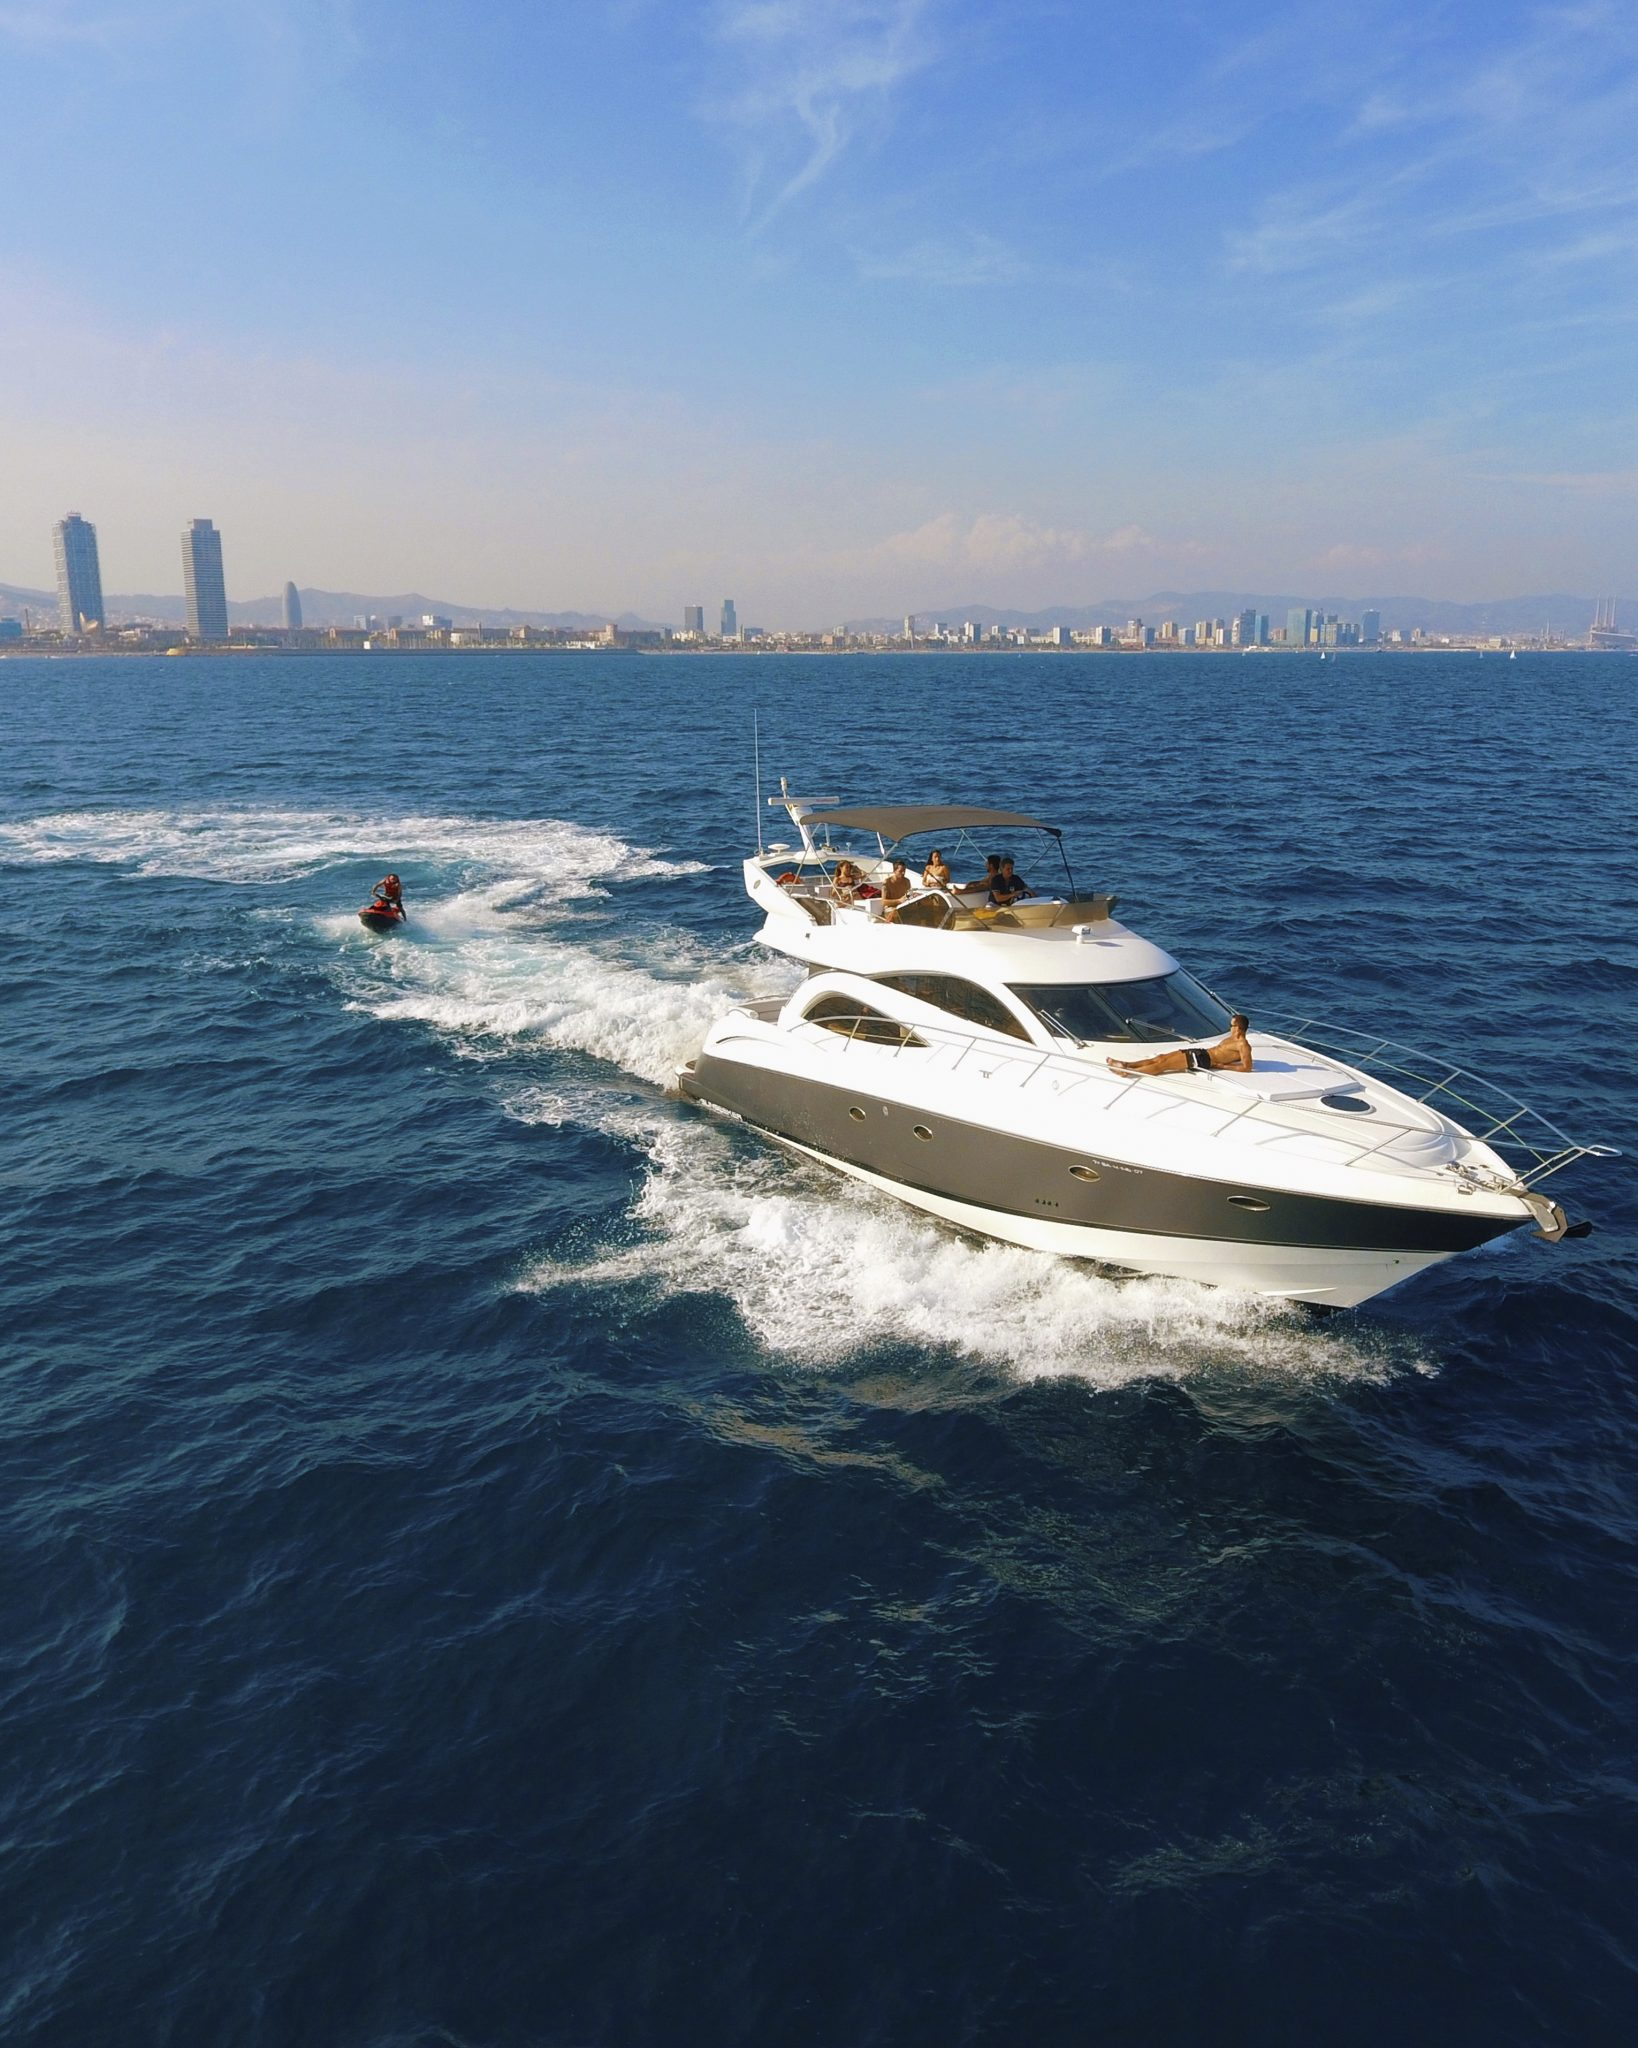 yacht_luxury_cruise_barcelona_skyline_tour